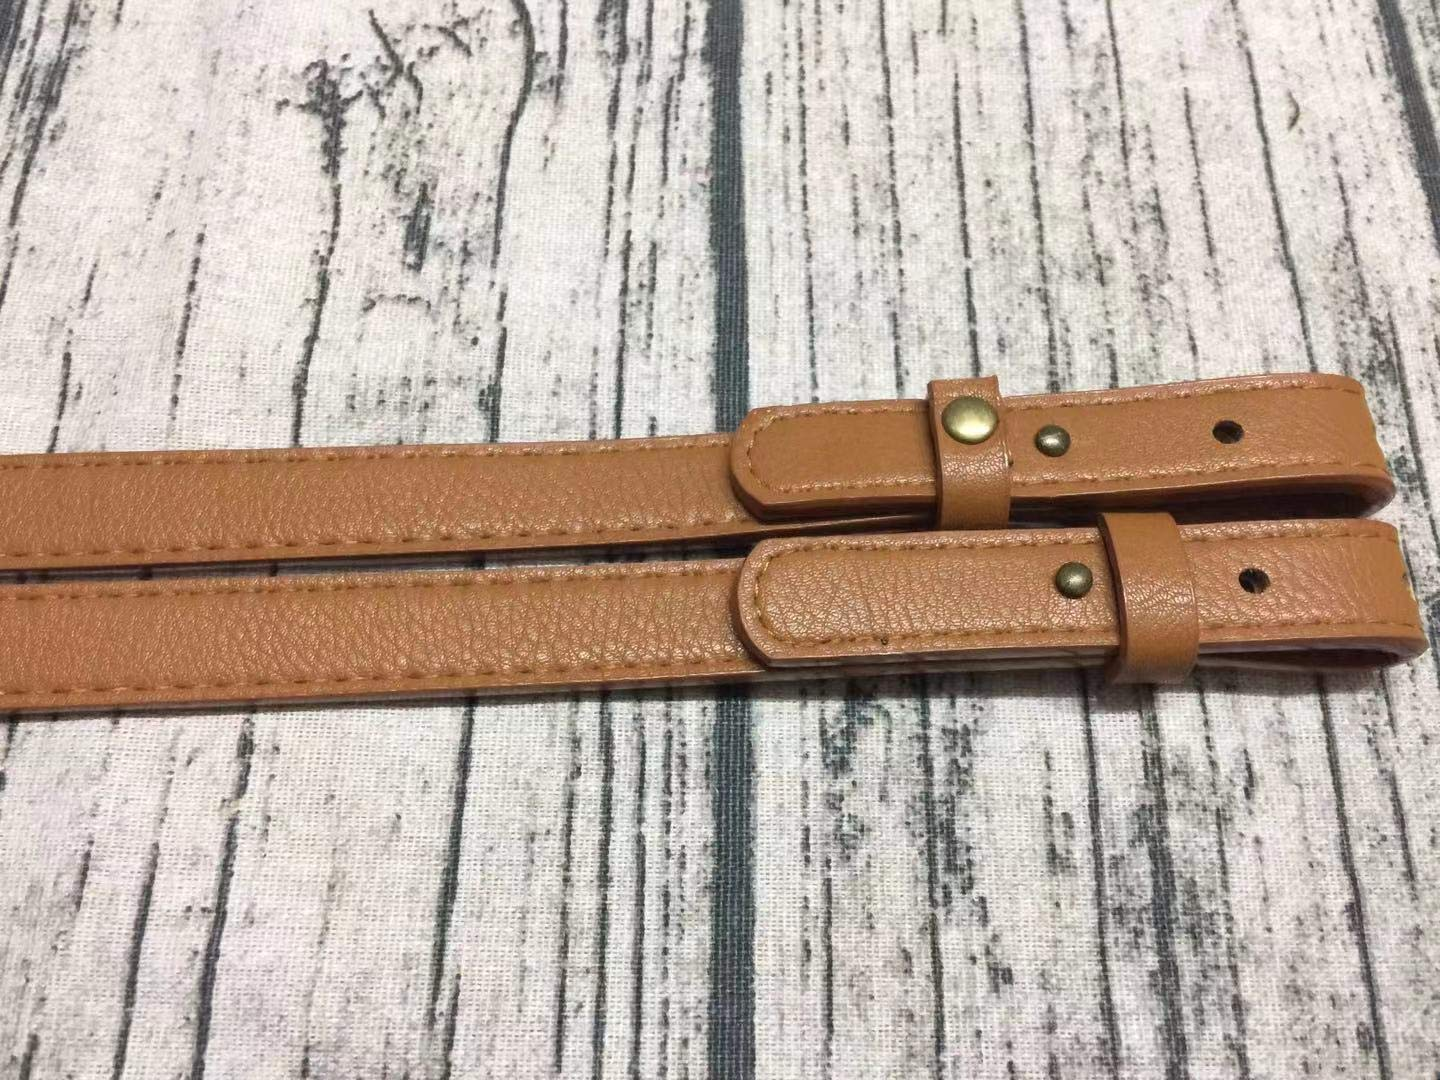 Light Brown Classic PU Leather Replacement Strap for Handbag Purse HinLot Pack of 2 Adjustable Shoulder Bag Strap